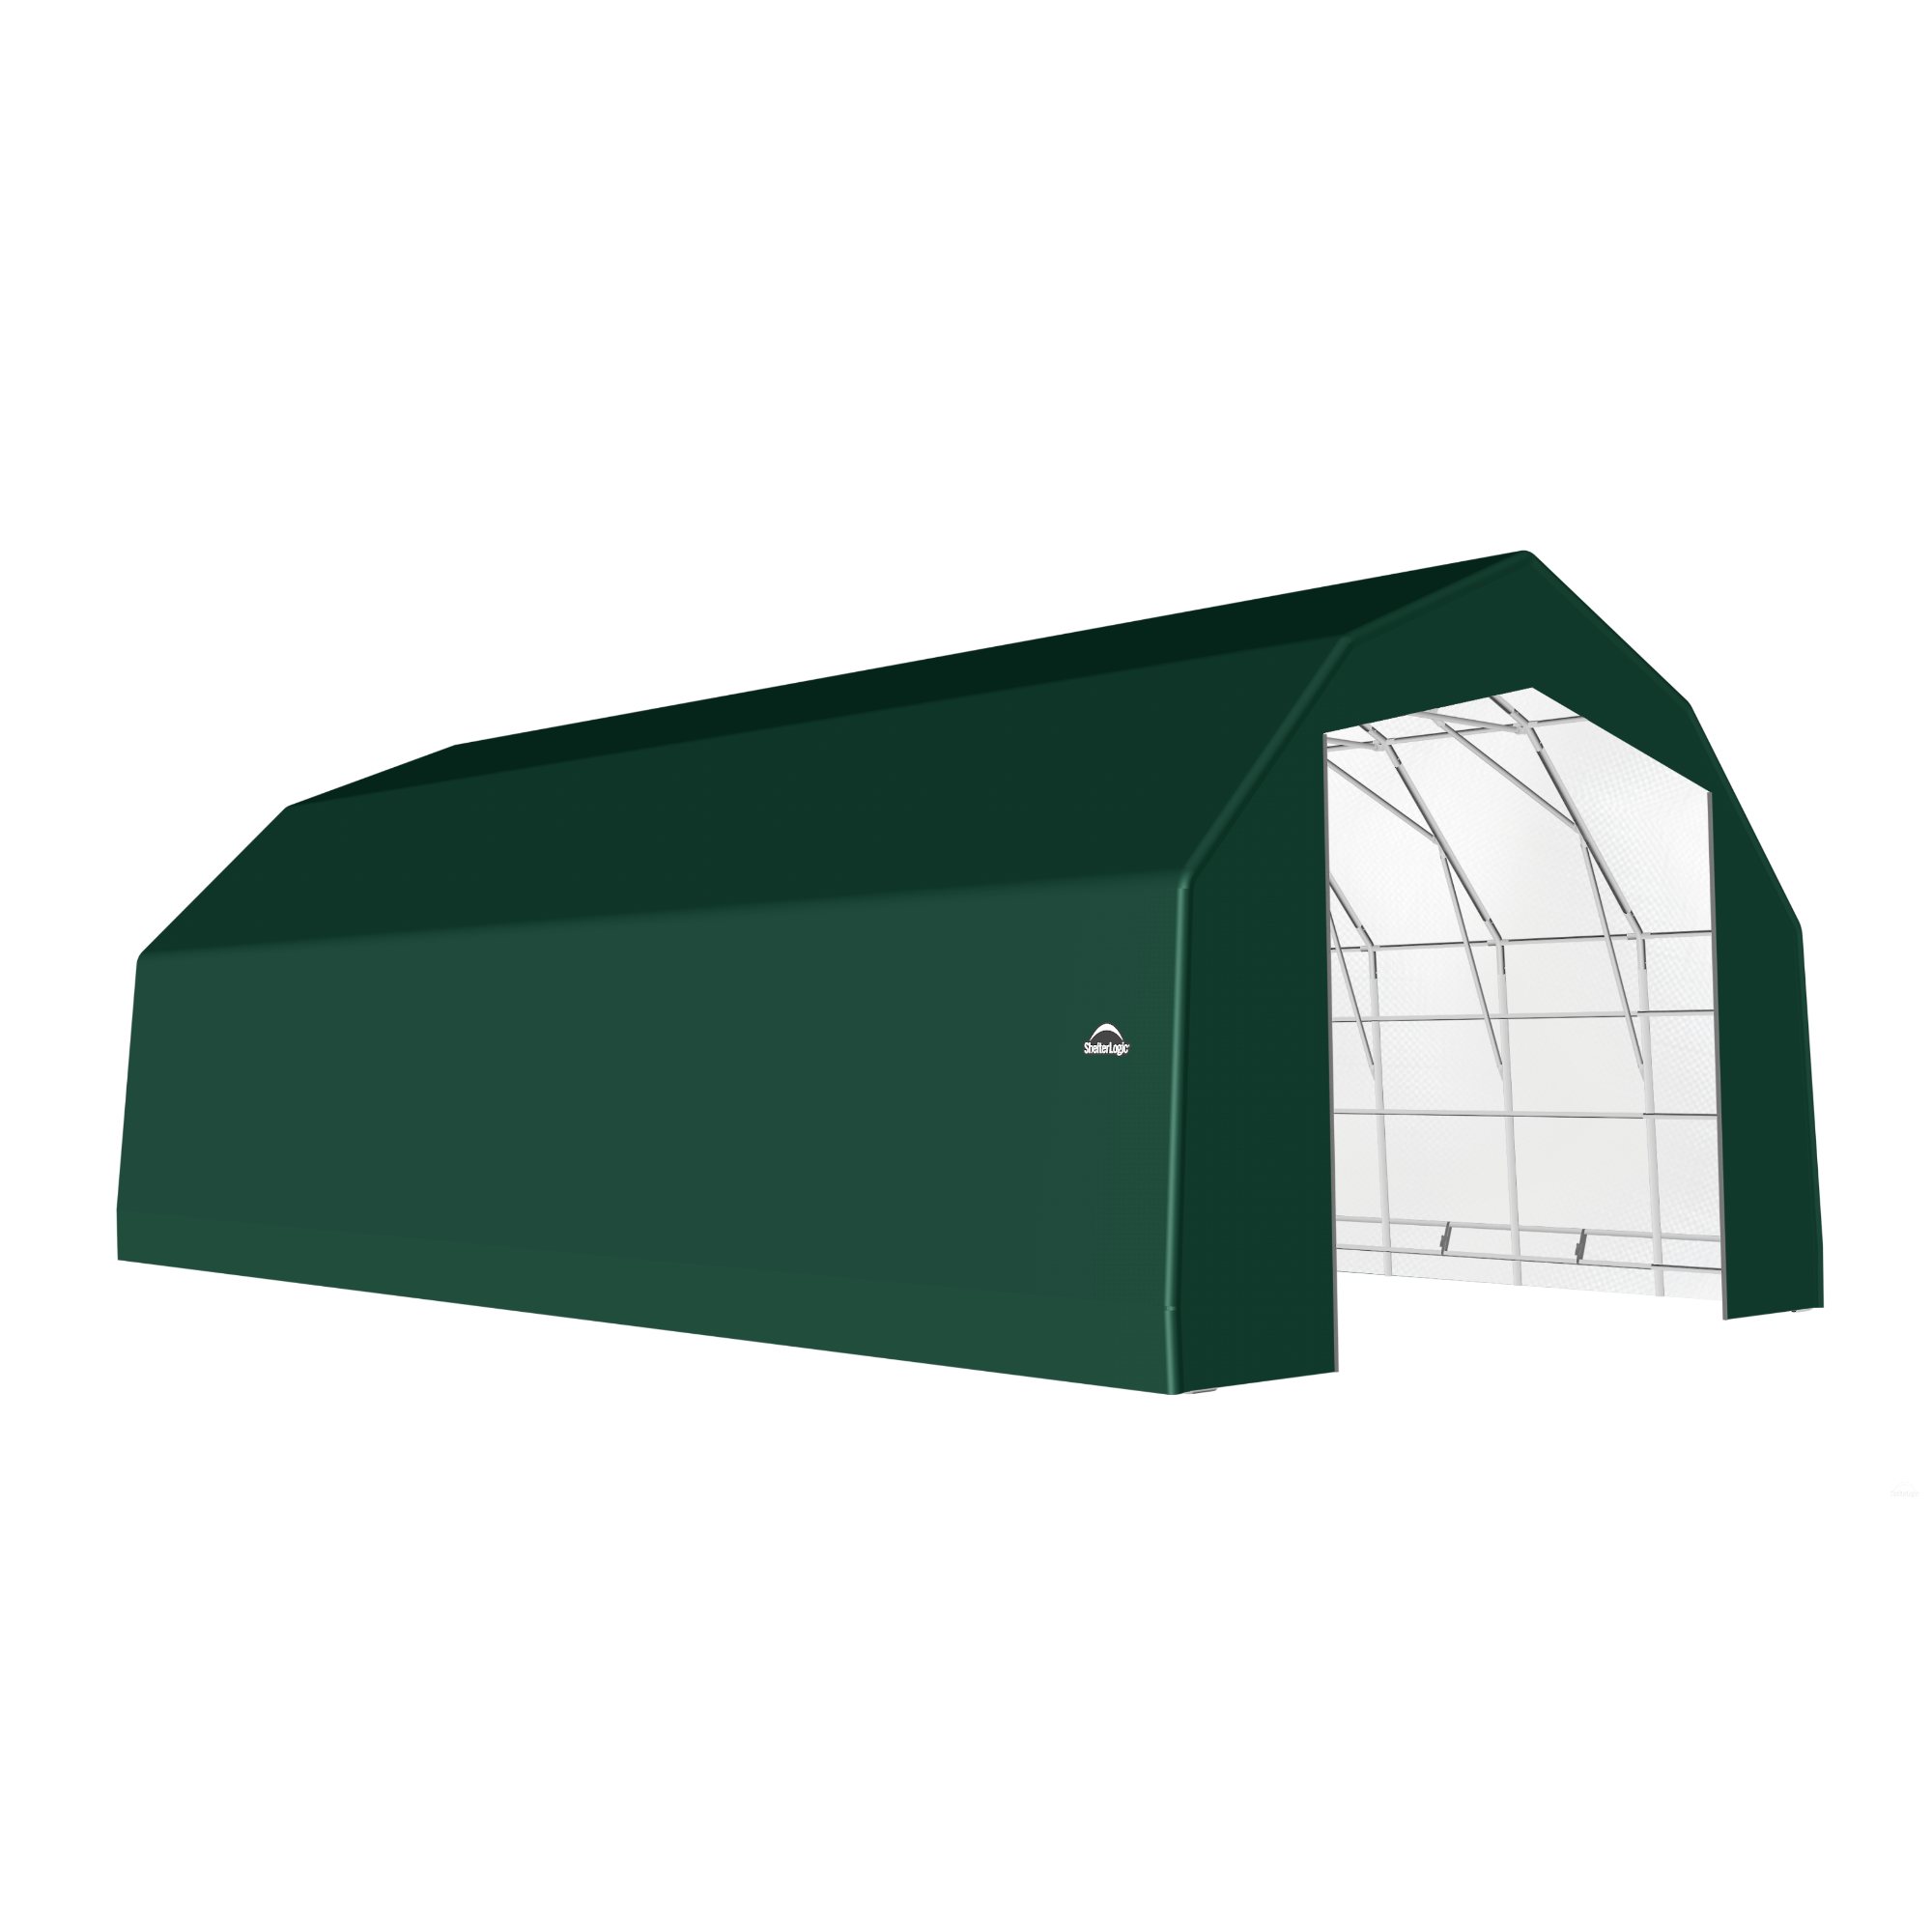 SP Barn 25X36X17 Green 14 oz PE Shelter